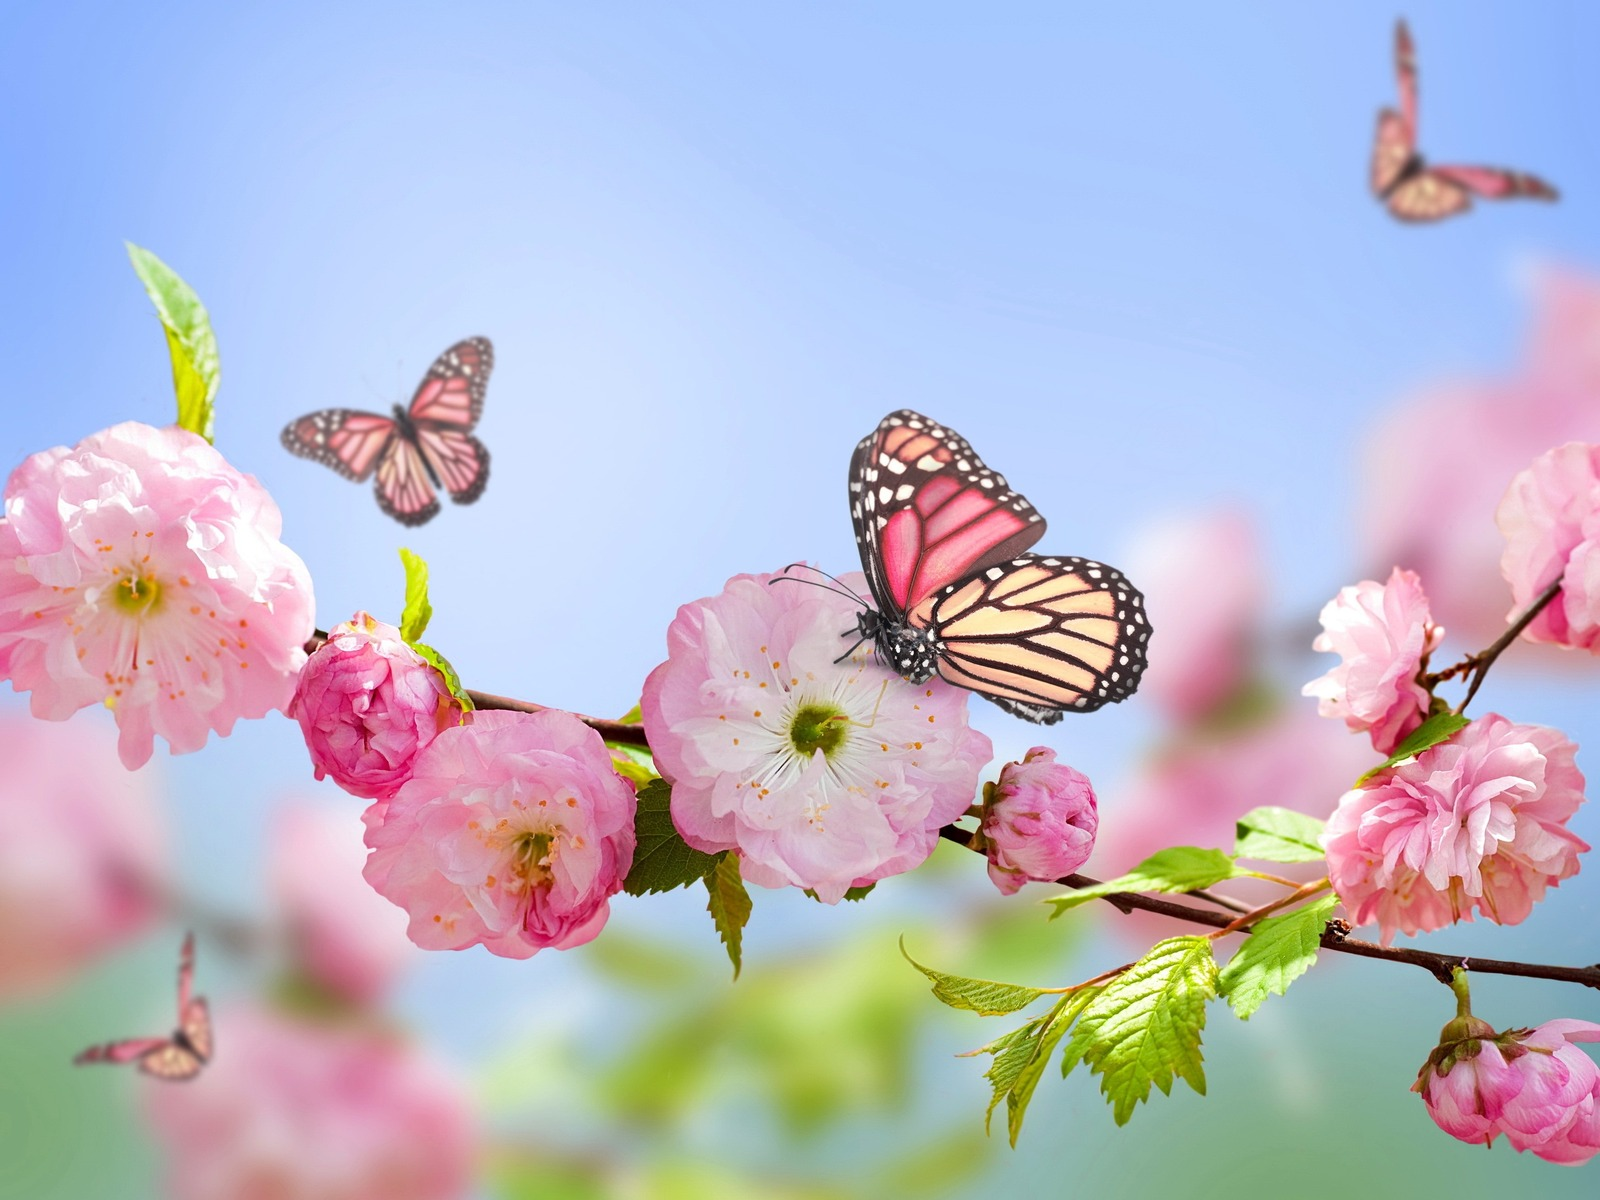 Download wallpaper 1600x1200 flowers butterflies spring bloom 1600x1200